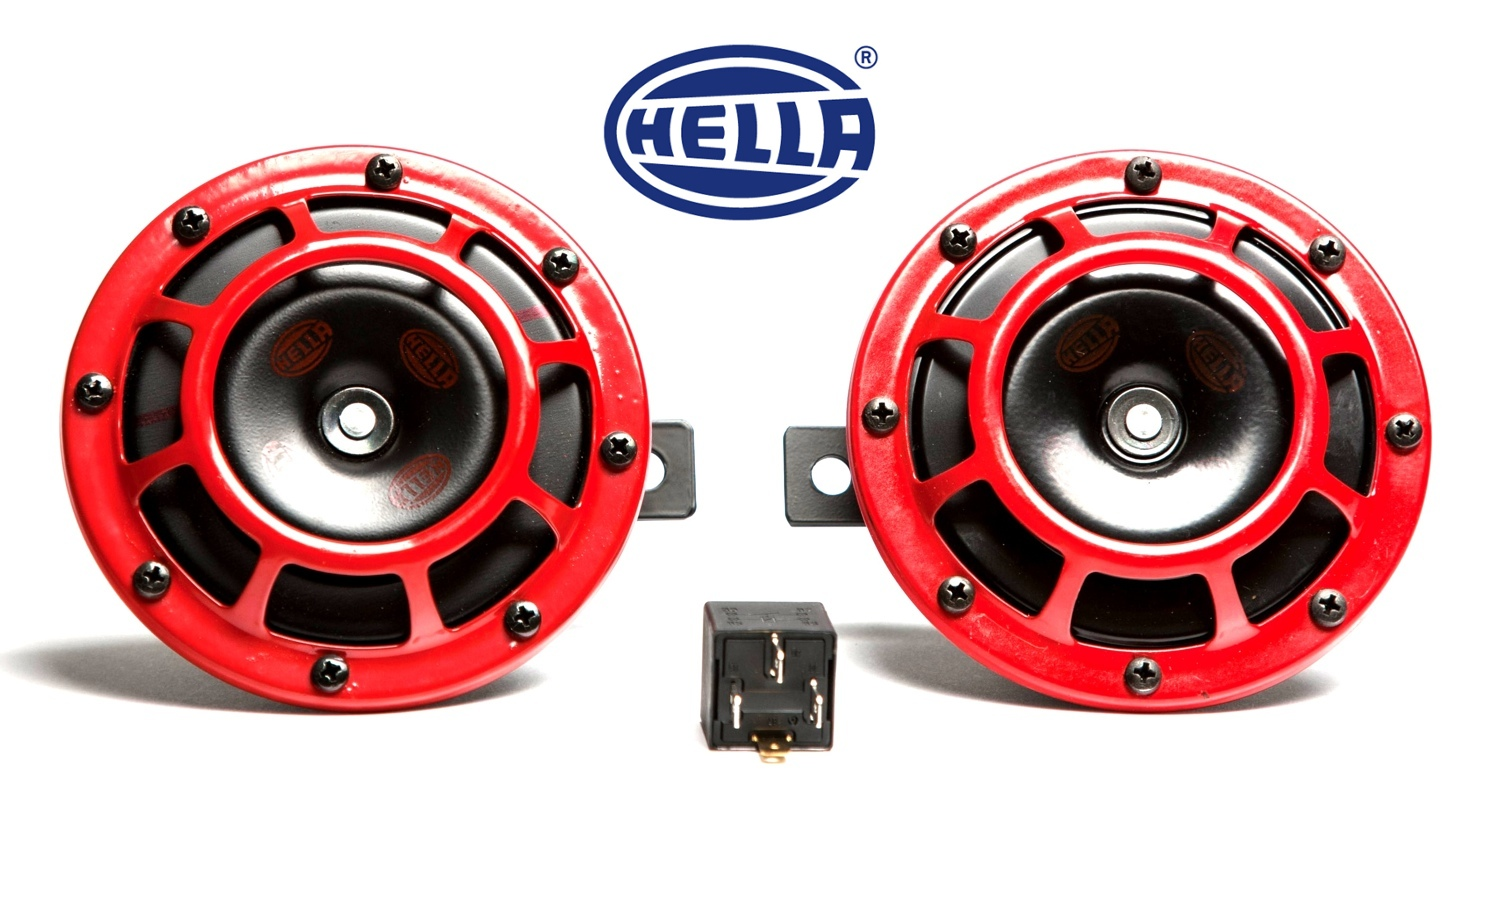 hella supertone wiring diagram for bft photocells showoff imports horn kit red 118db set